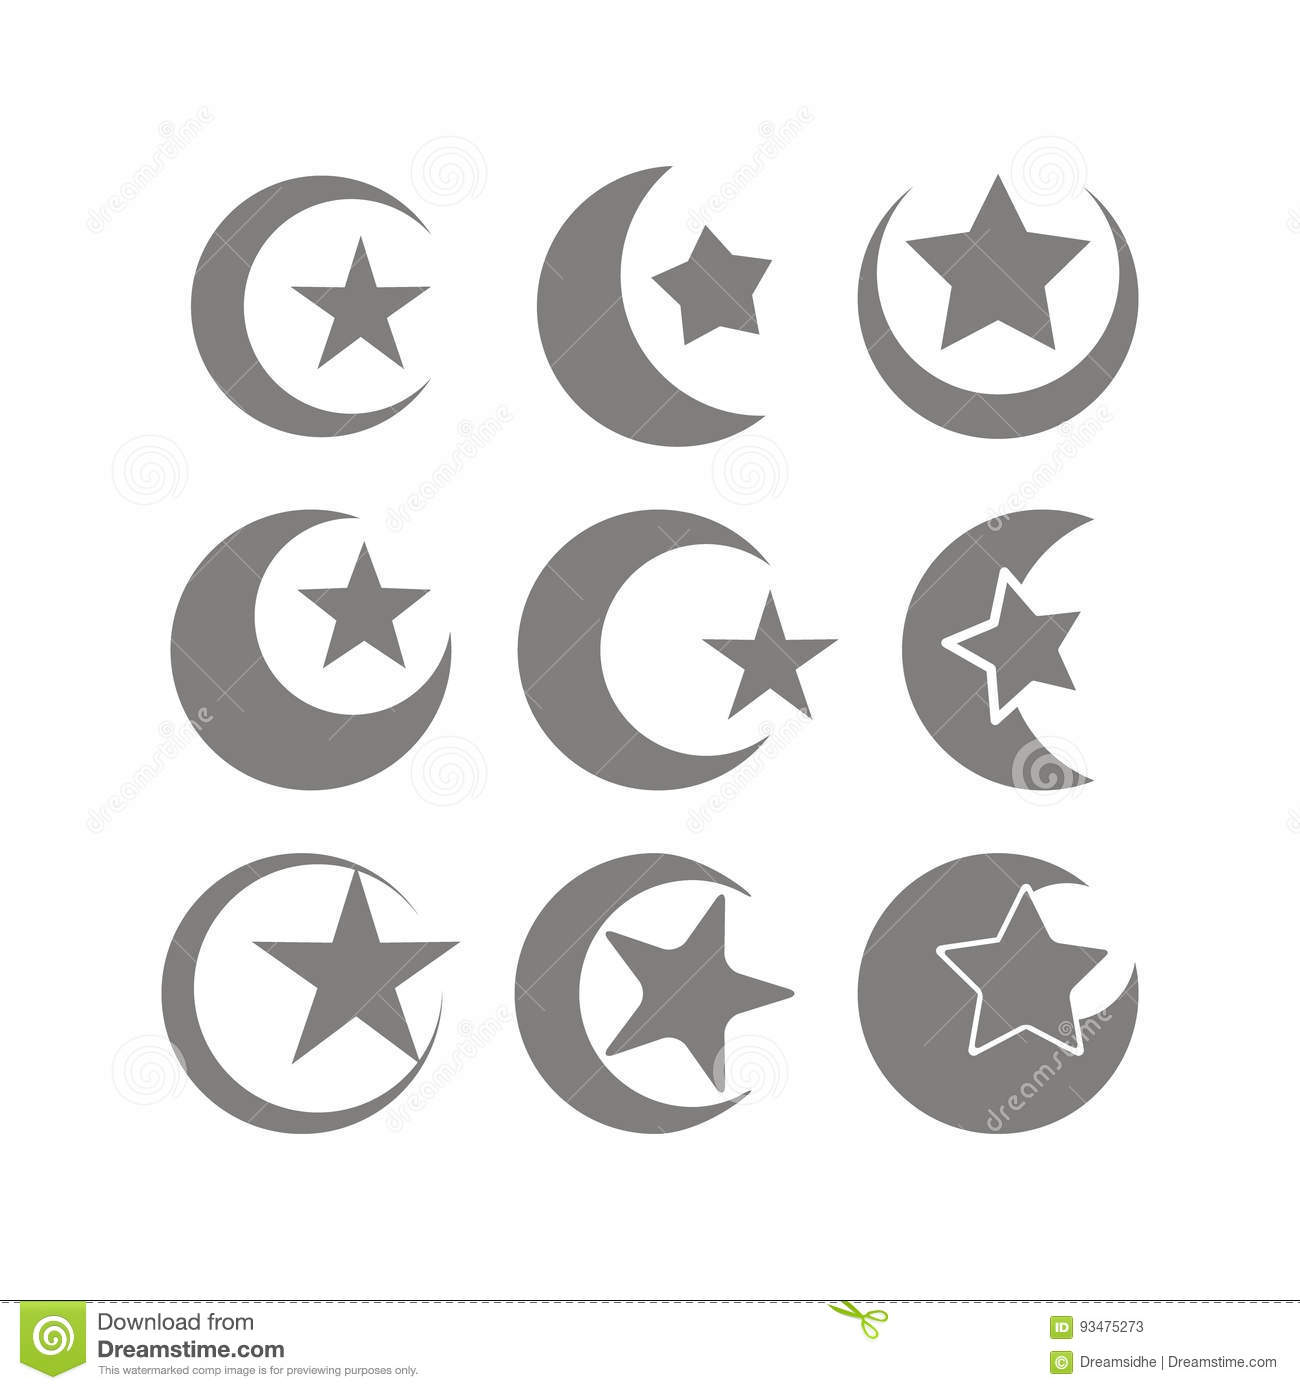 Set of monochrome icons with symbol of islam crescent moon with star set of monochrome icons with symbol of islam crescent moon with star biocorpaavc Gallery